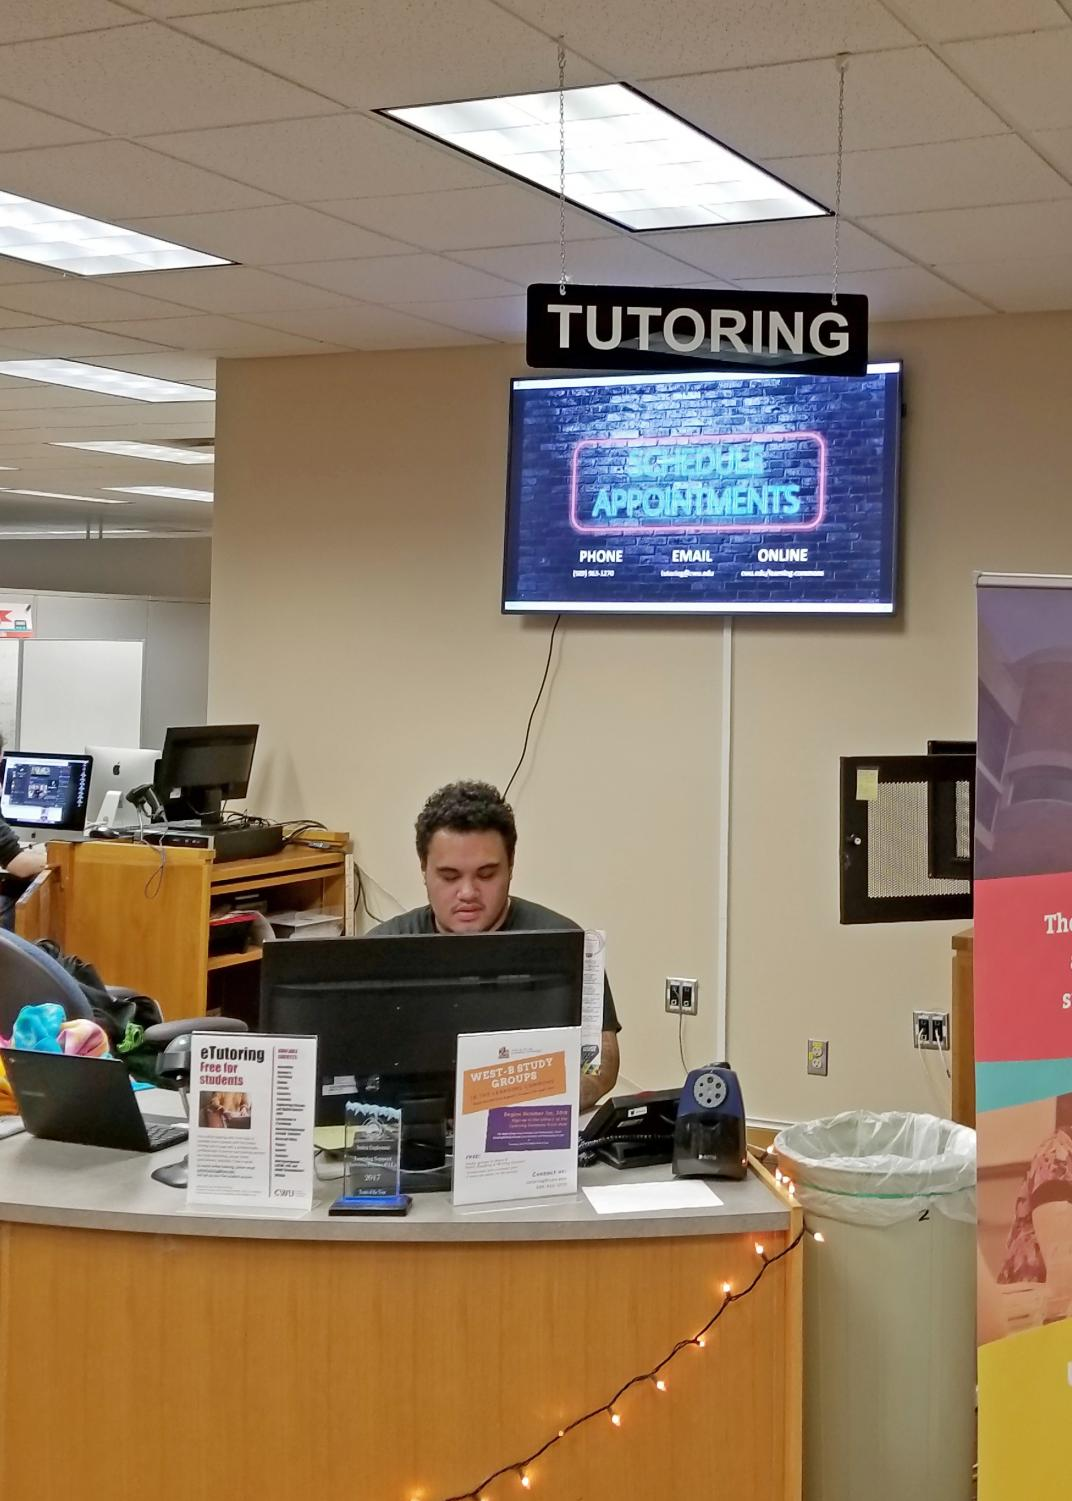 Front Desk Office Assistant Sione Sausau helps students check in for tutoring.